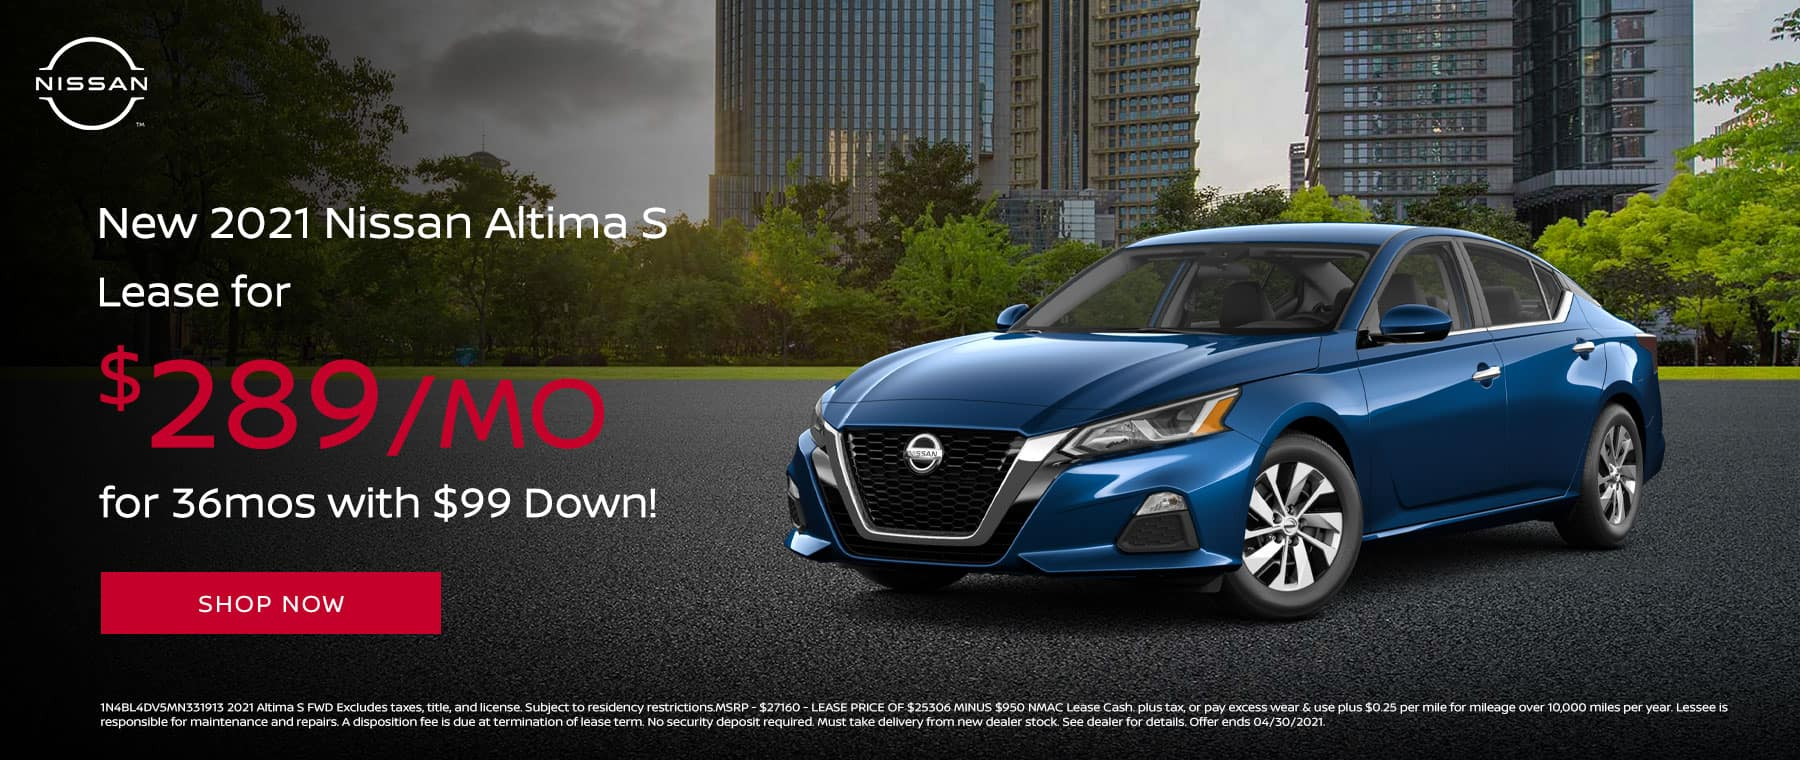 Lease a New 2021 Nissan Altima S for $289/mo for 36mos with $99 Down!